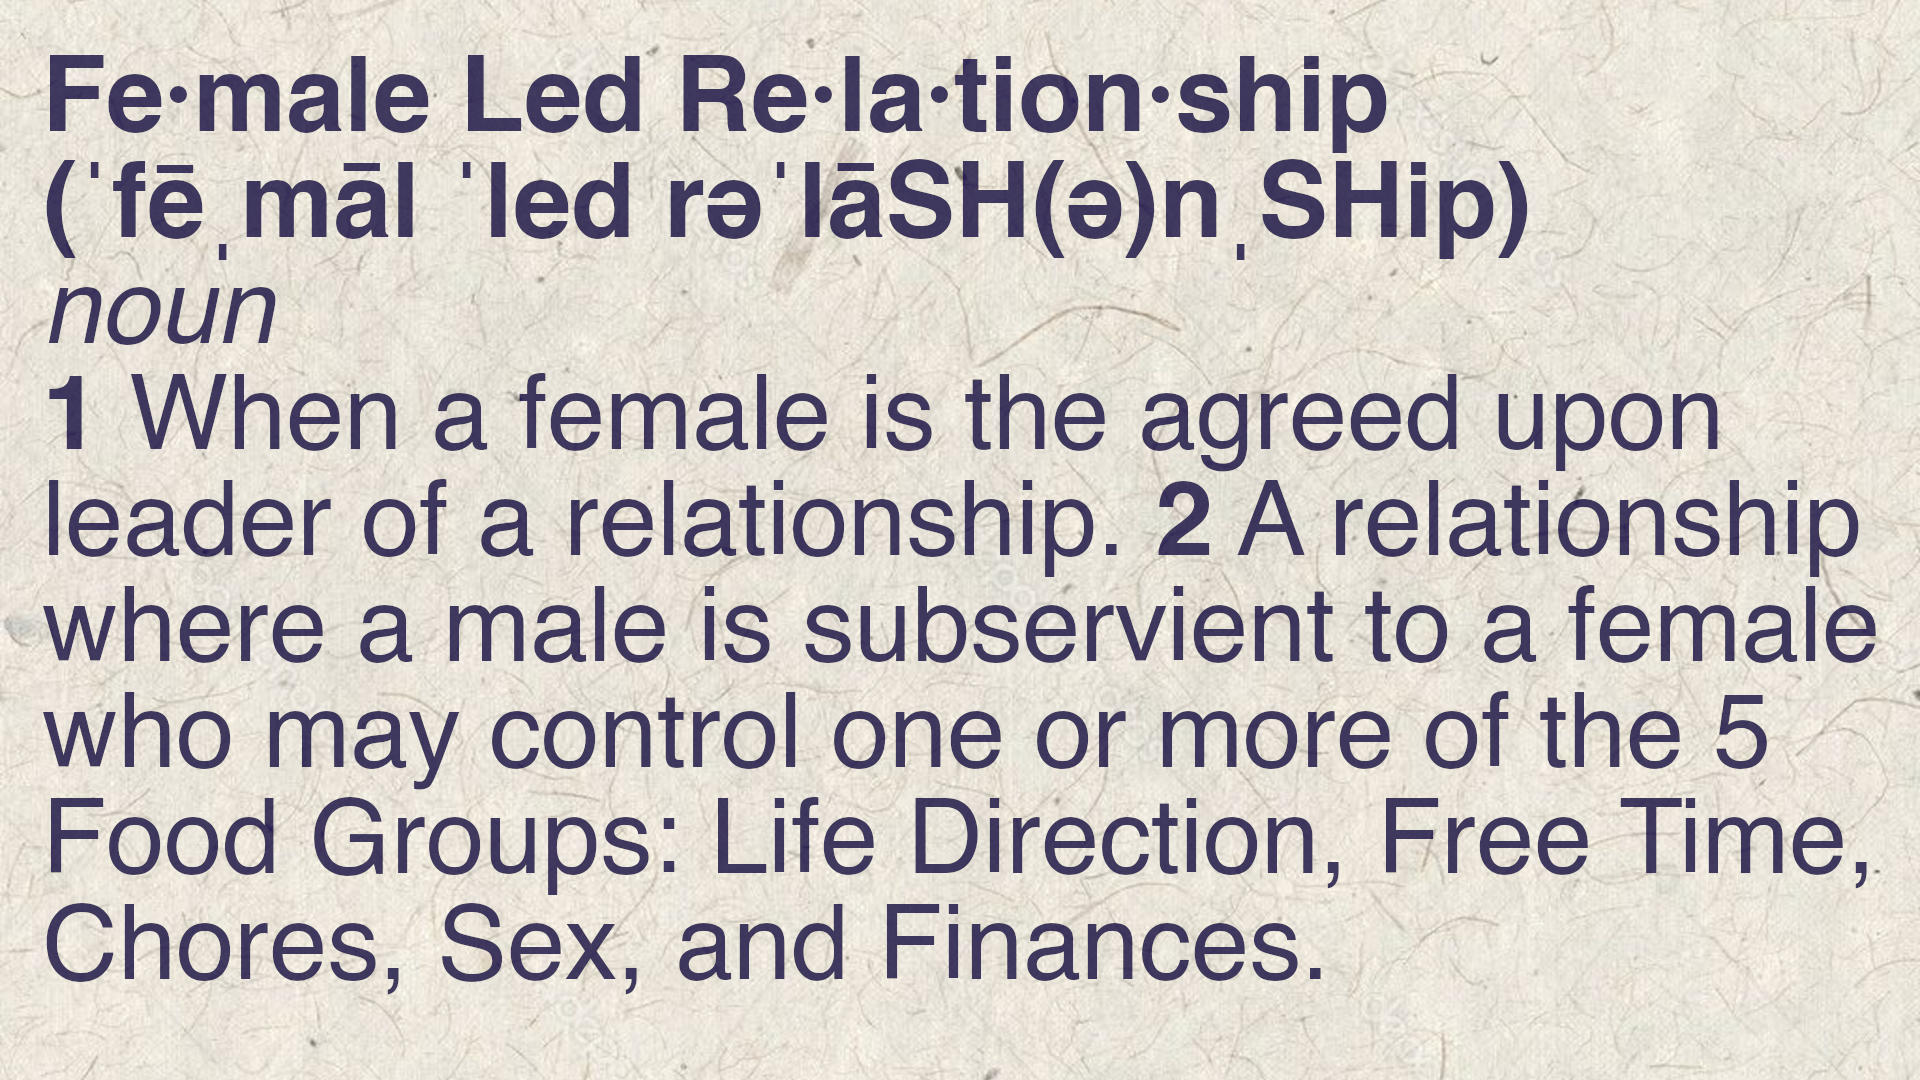 Interview relationship female led CYBELIANS